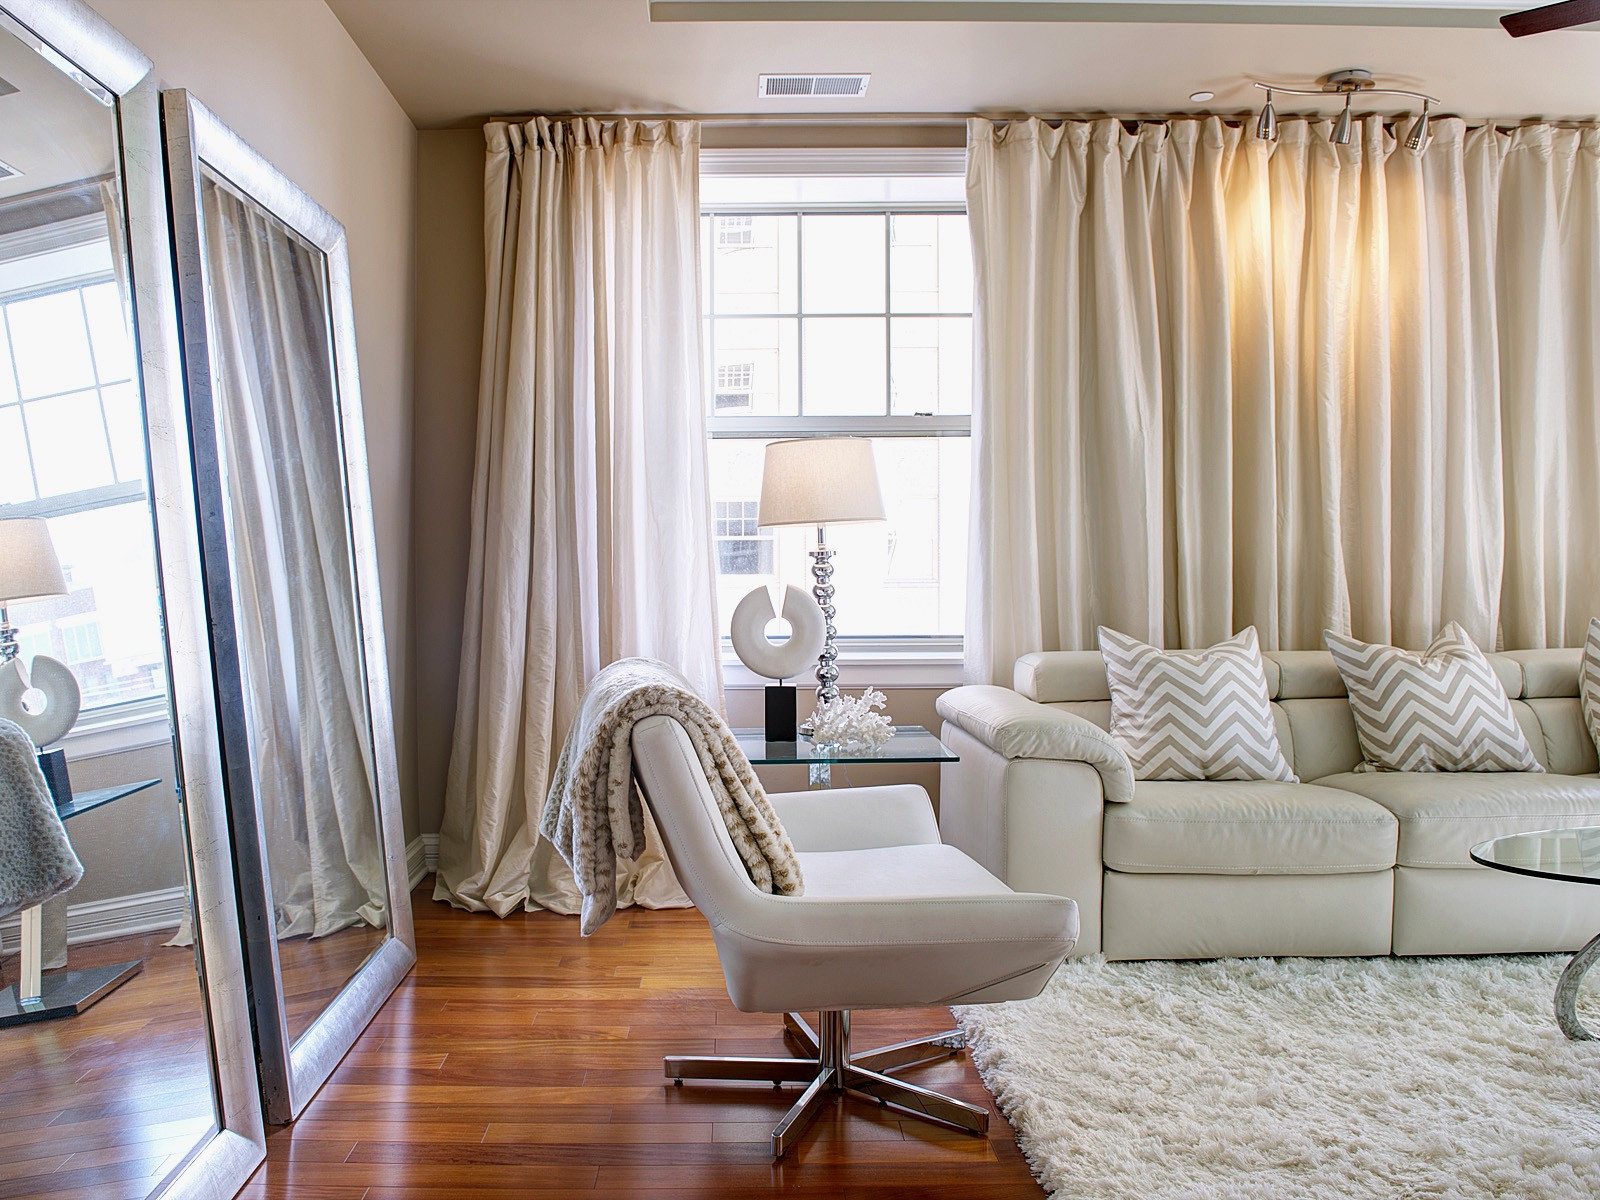 Best ideas about Curtains For Living Room . Save or Pin Beautiful Sheer Living Room Curtains Ideas for Hanging Now.